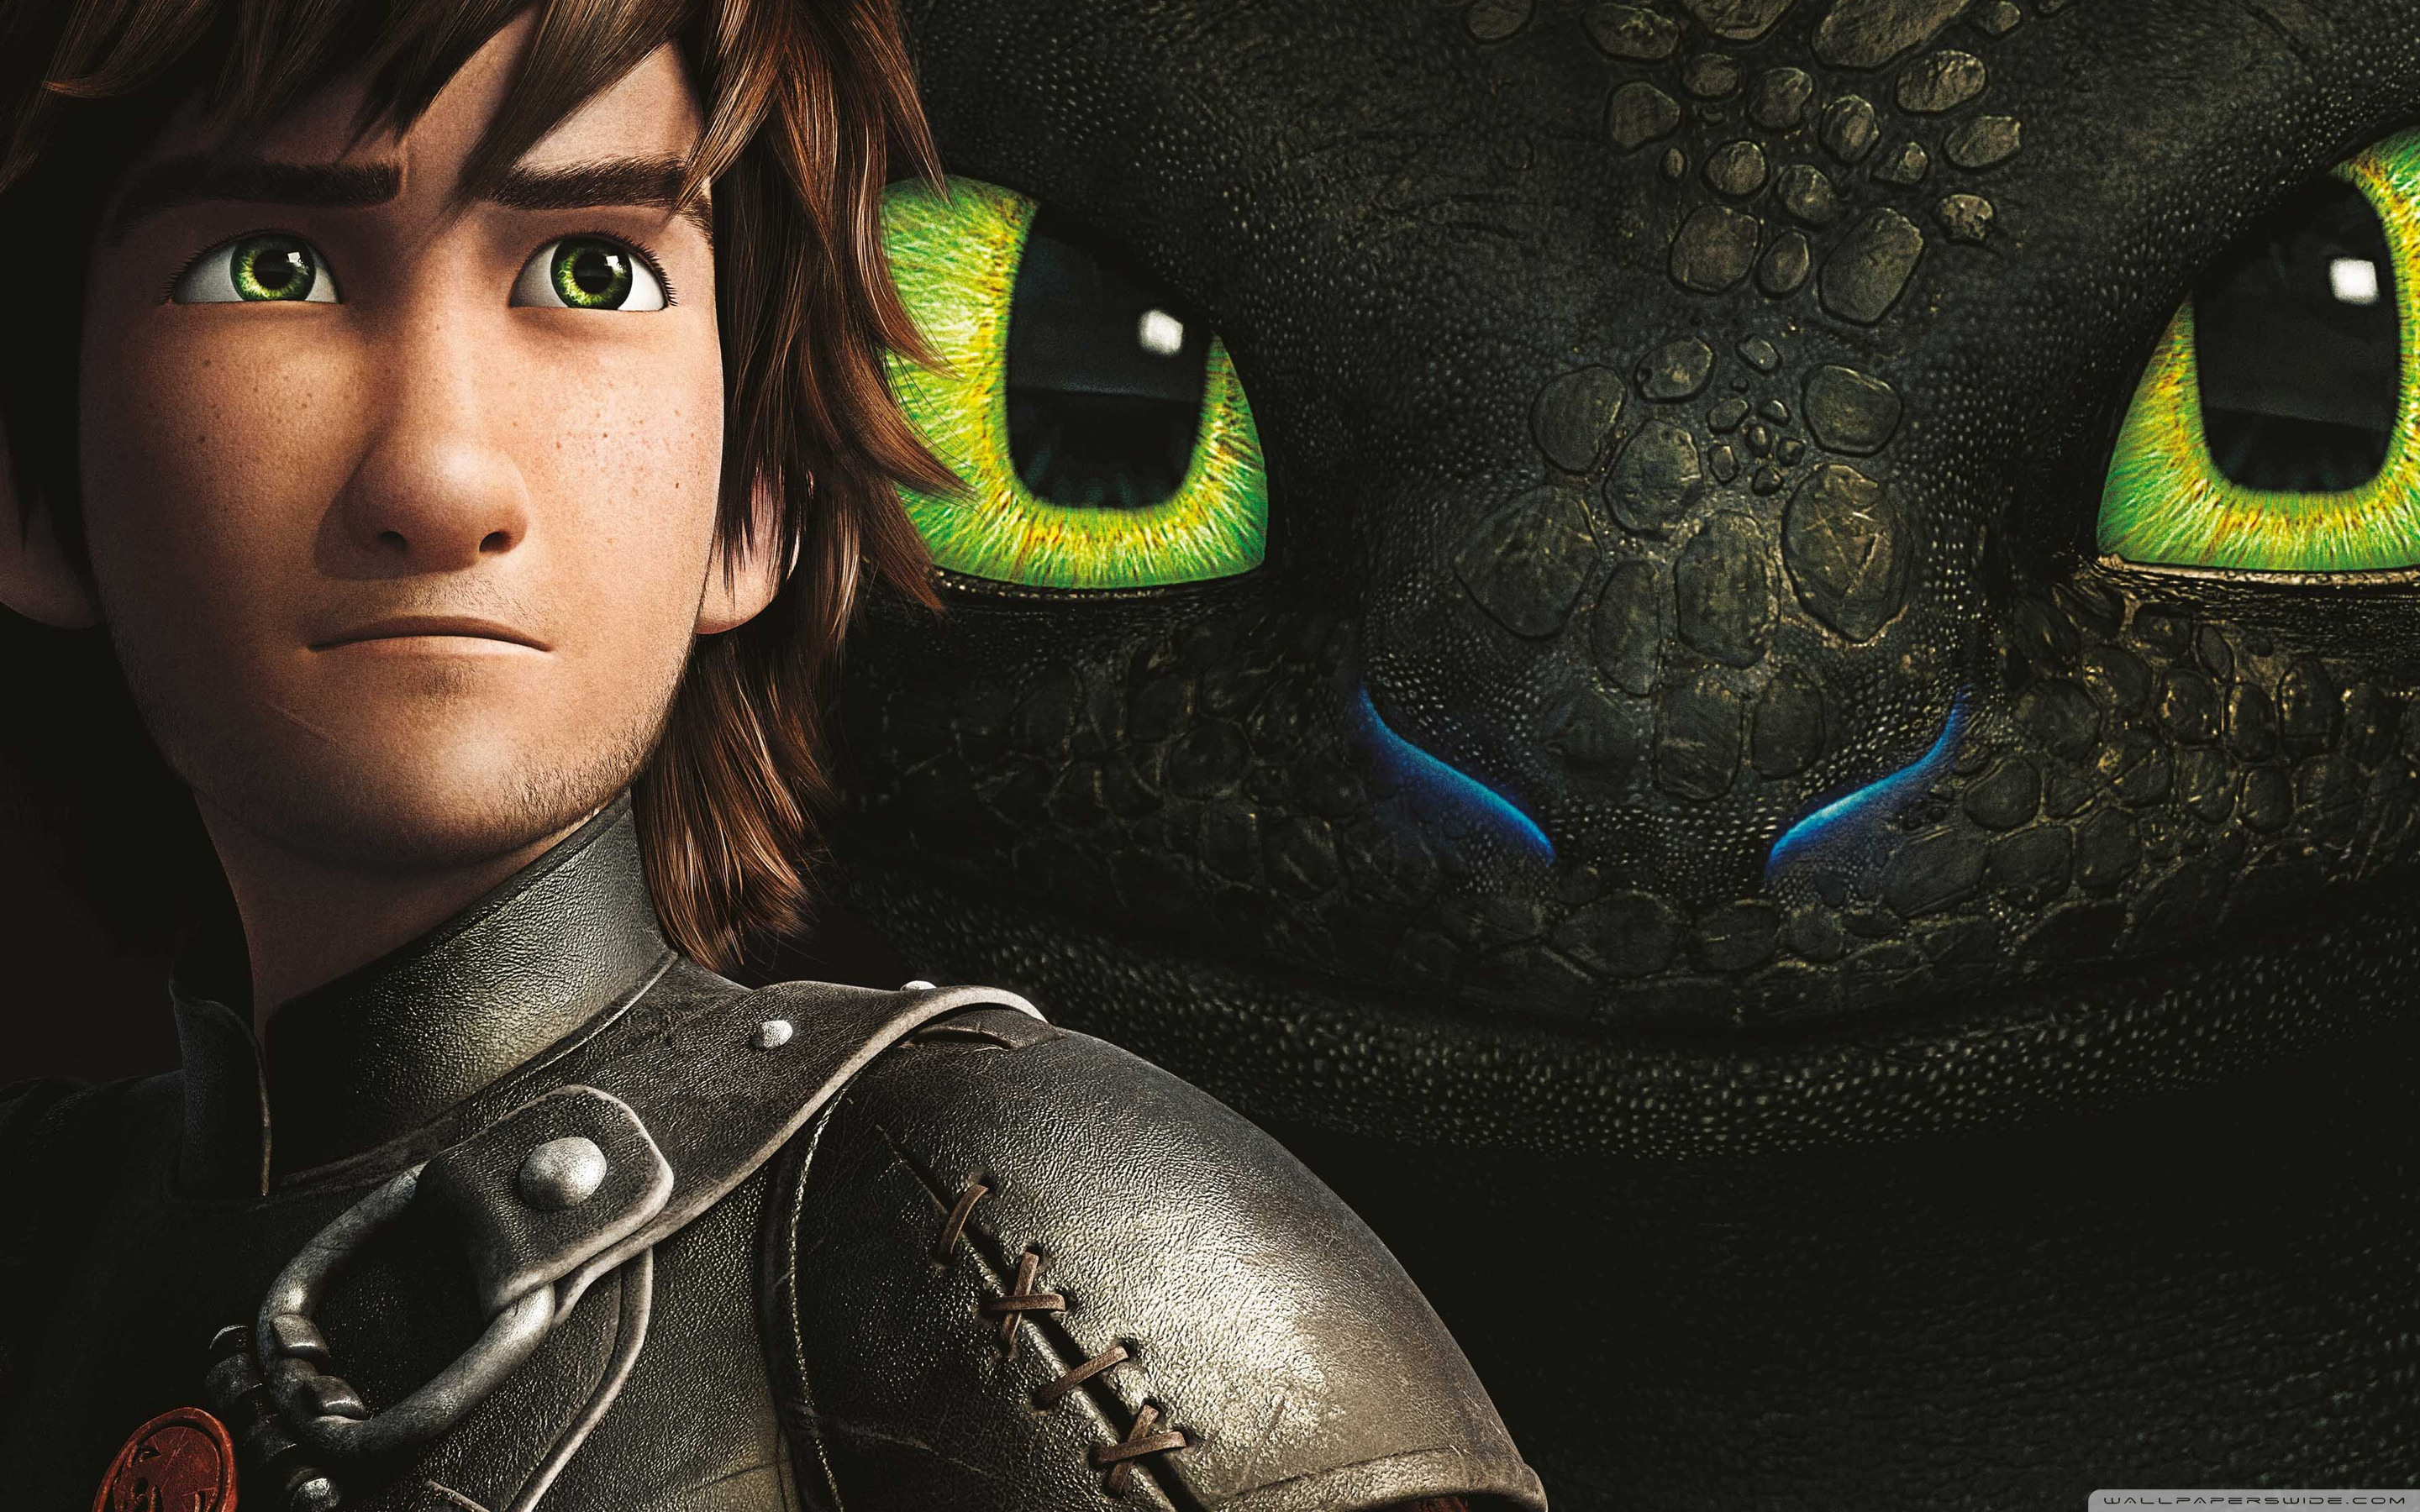 Hiccup And Toothless Wallpaper Hd 2880x1800 Wallpaper Teahub Io